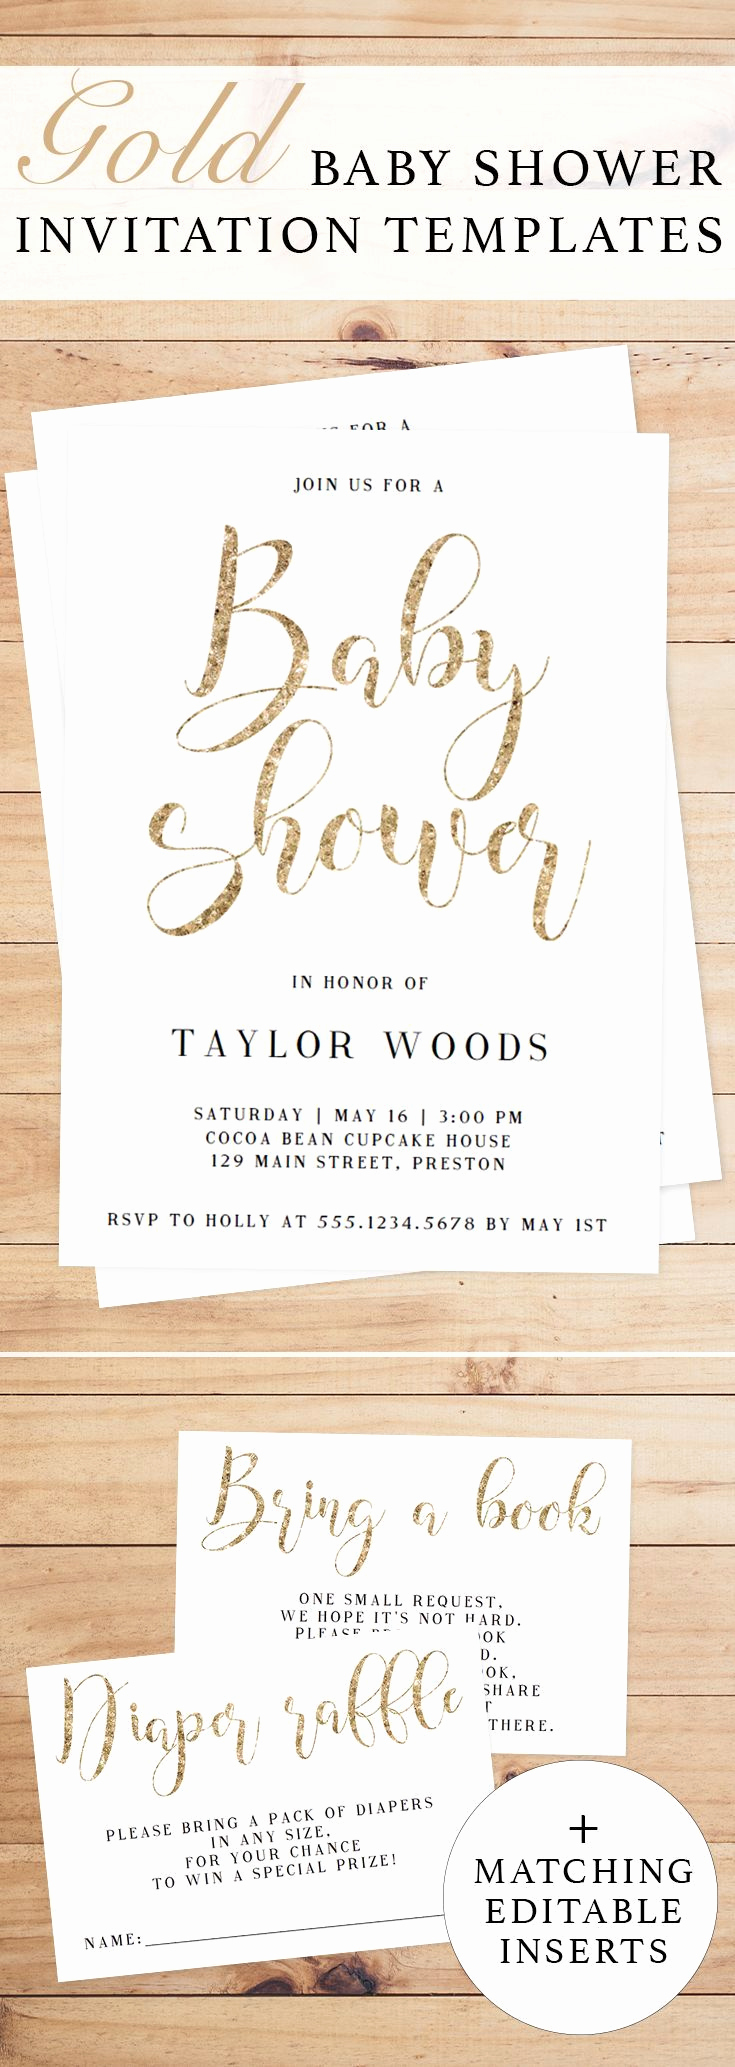 Printable Baby Shower Invitation Templates Awesome Best 25 Baby Shower Templates Ideas On Pinterest